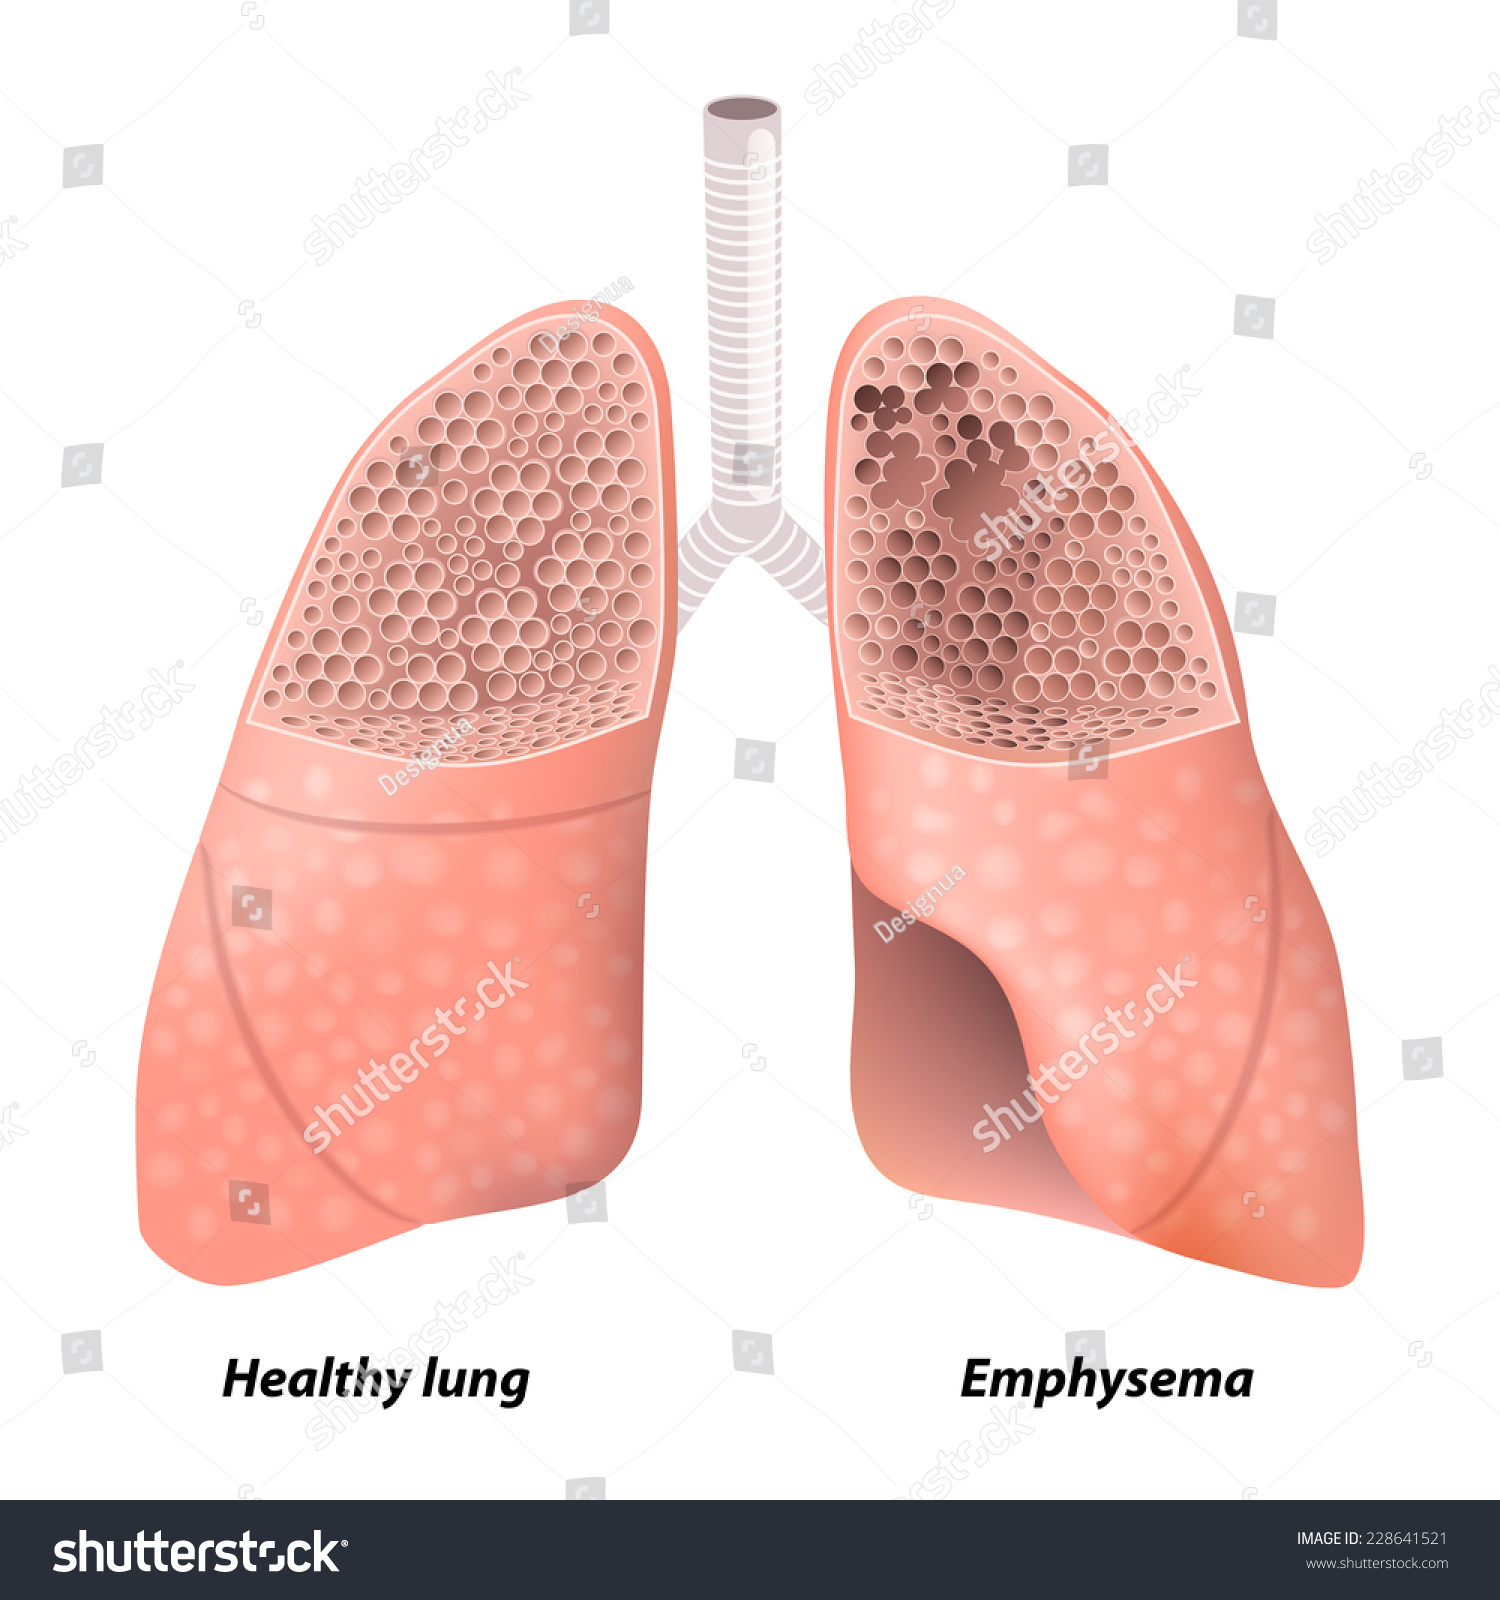 Emphysema chronic obstructive pulmonary disease diagram stock chronic obstructive pulmonary disease diagram showing a cross section of normal lung ccuart Images